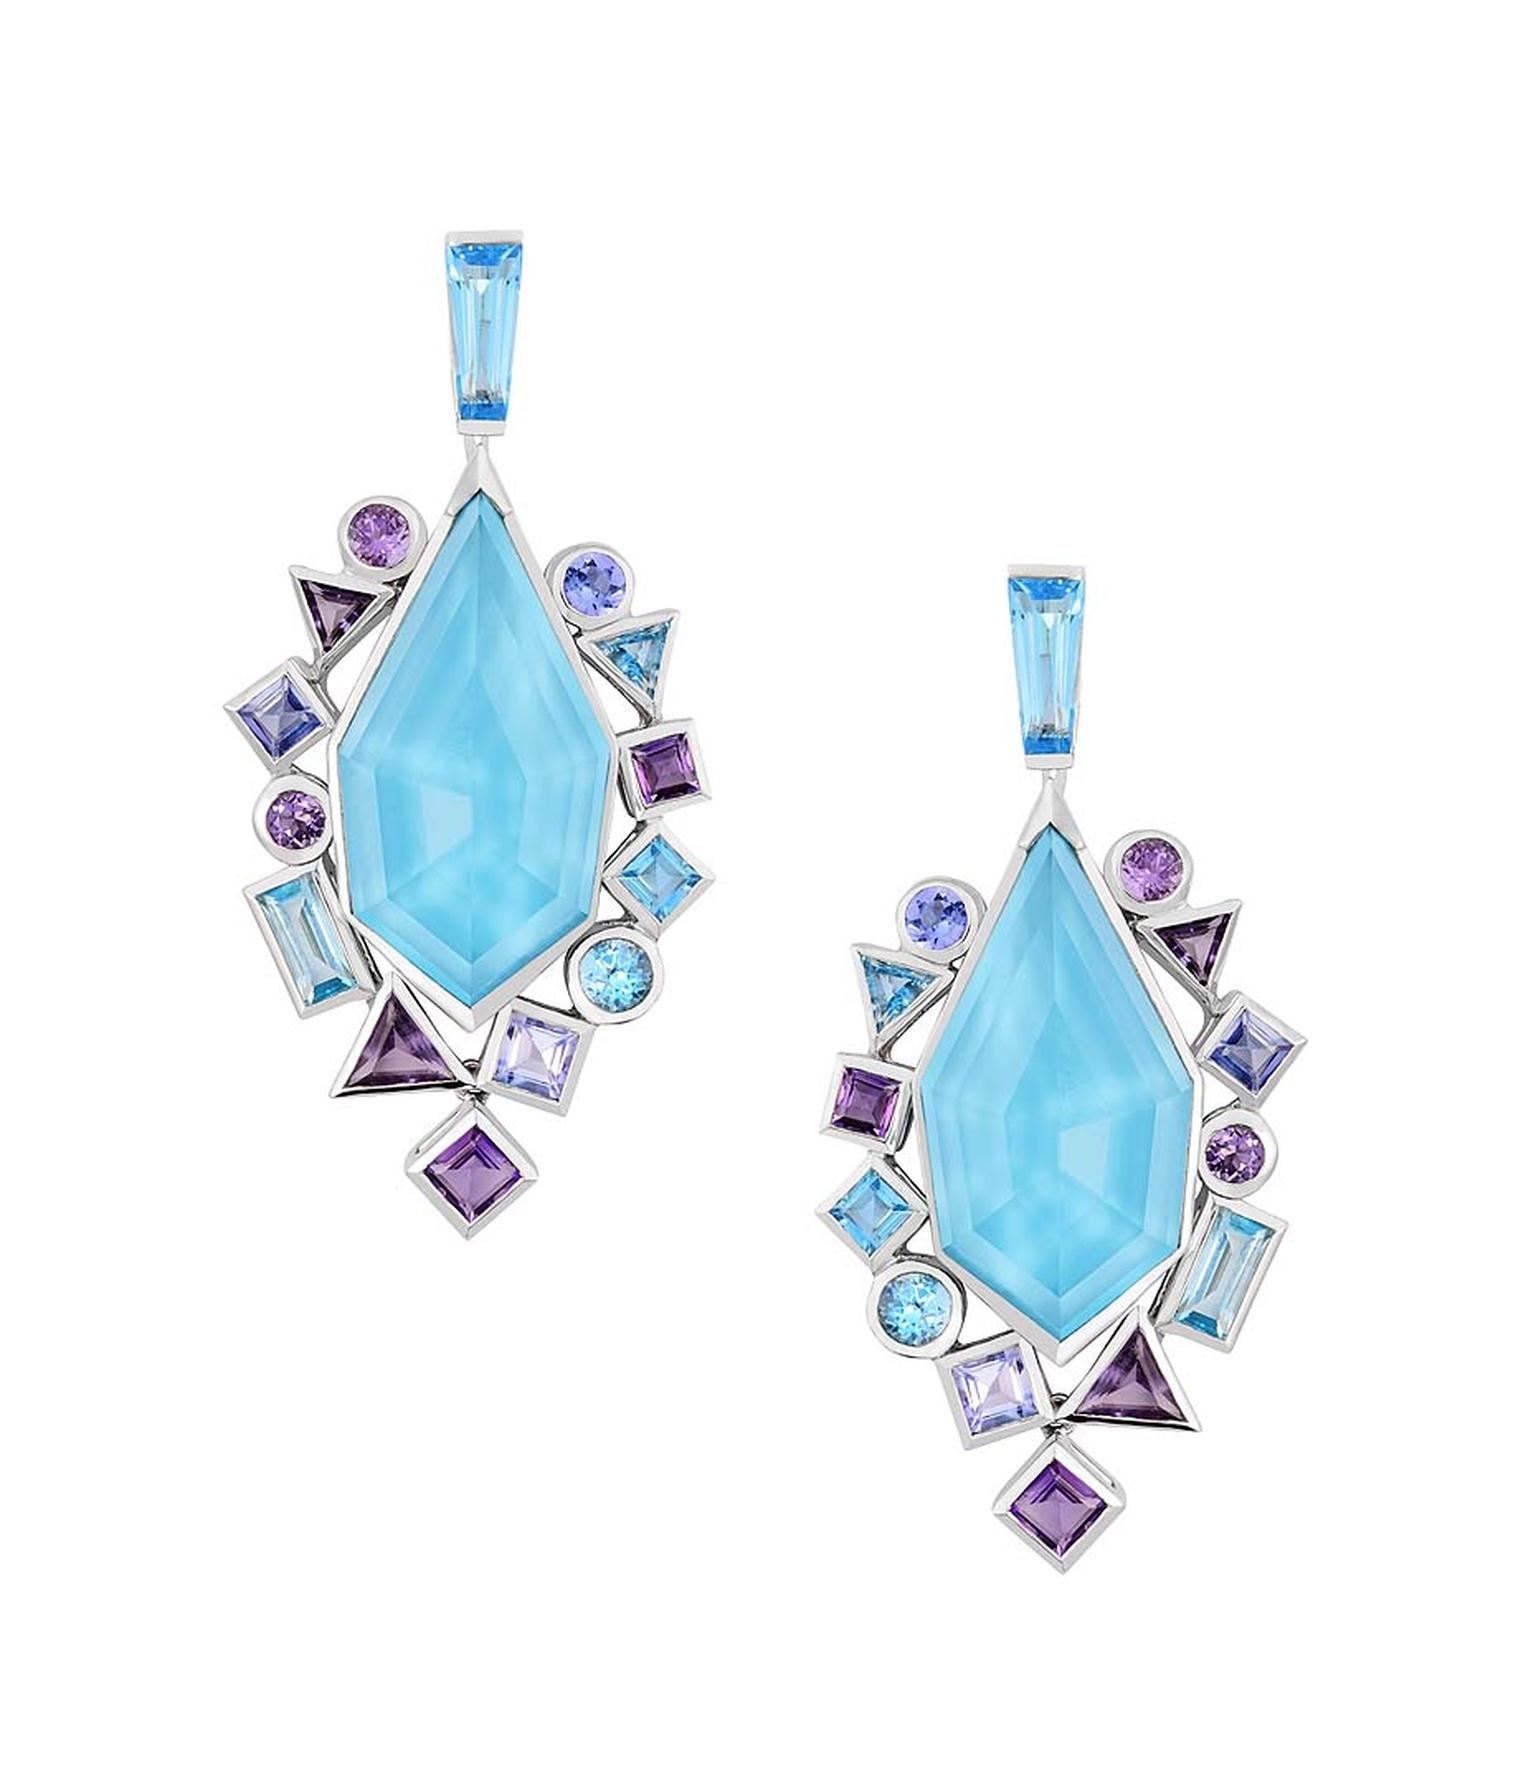 Stephen Webster earrings from the new Gold Struck collection, featuring a central sky-blue facetted crystal with bezel-set blue and mauve stones.